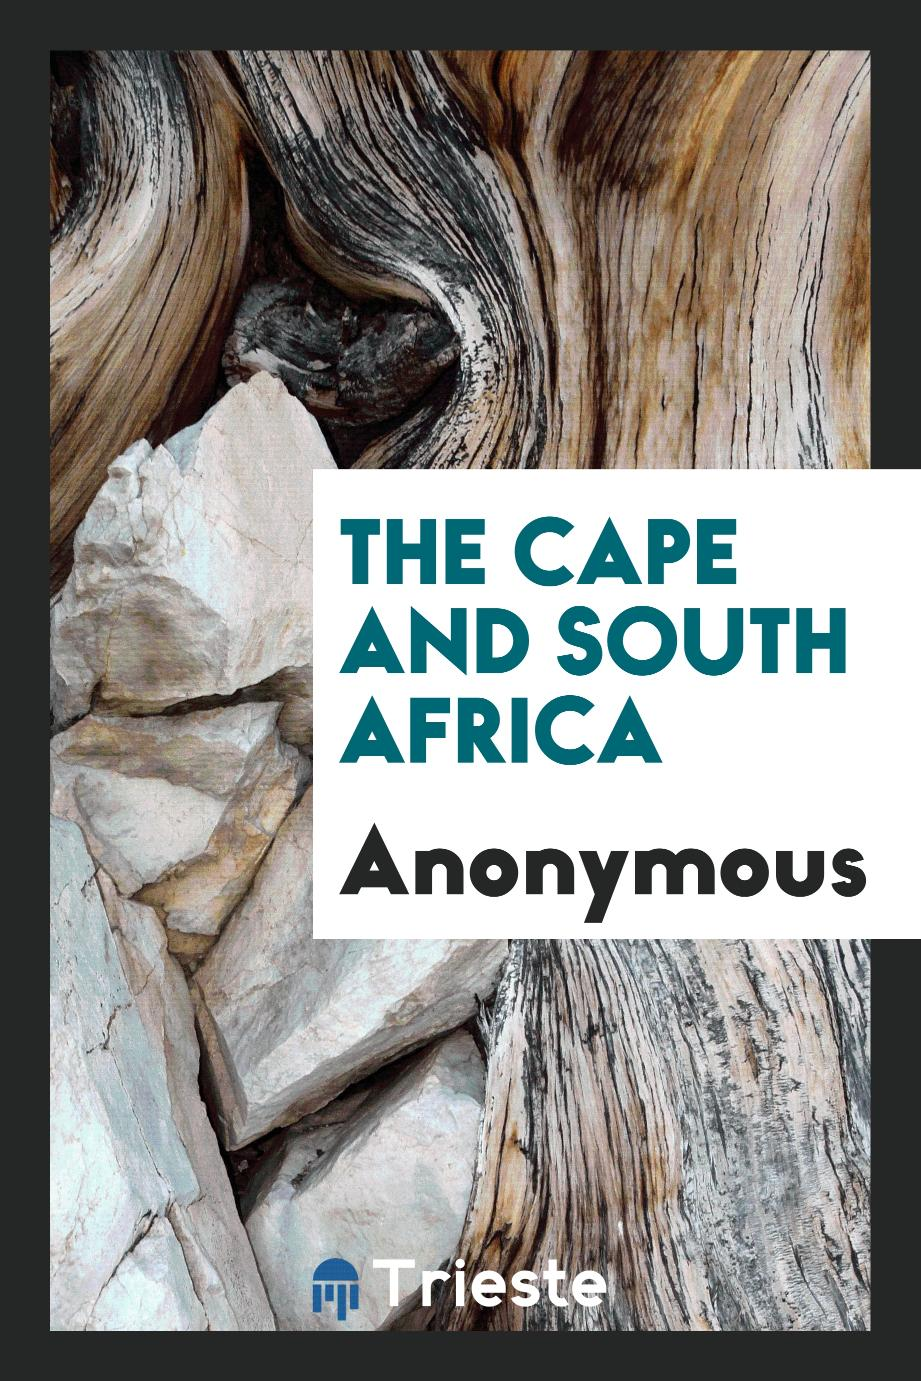 The Cape and South Africa